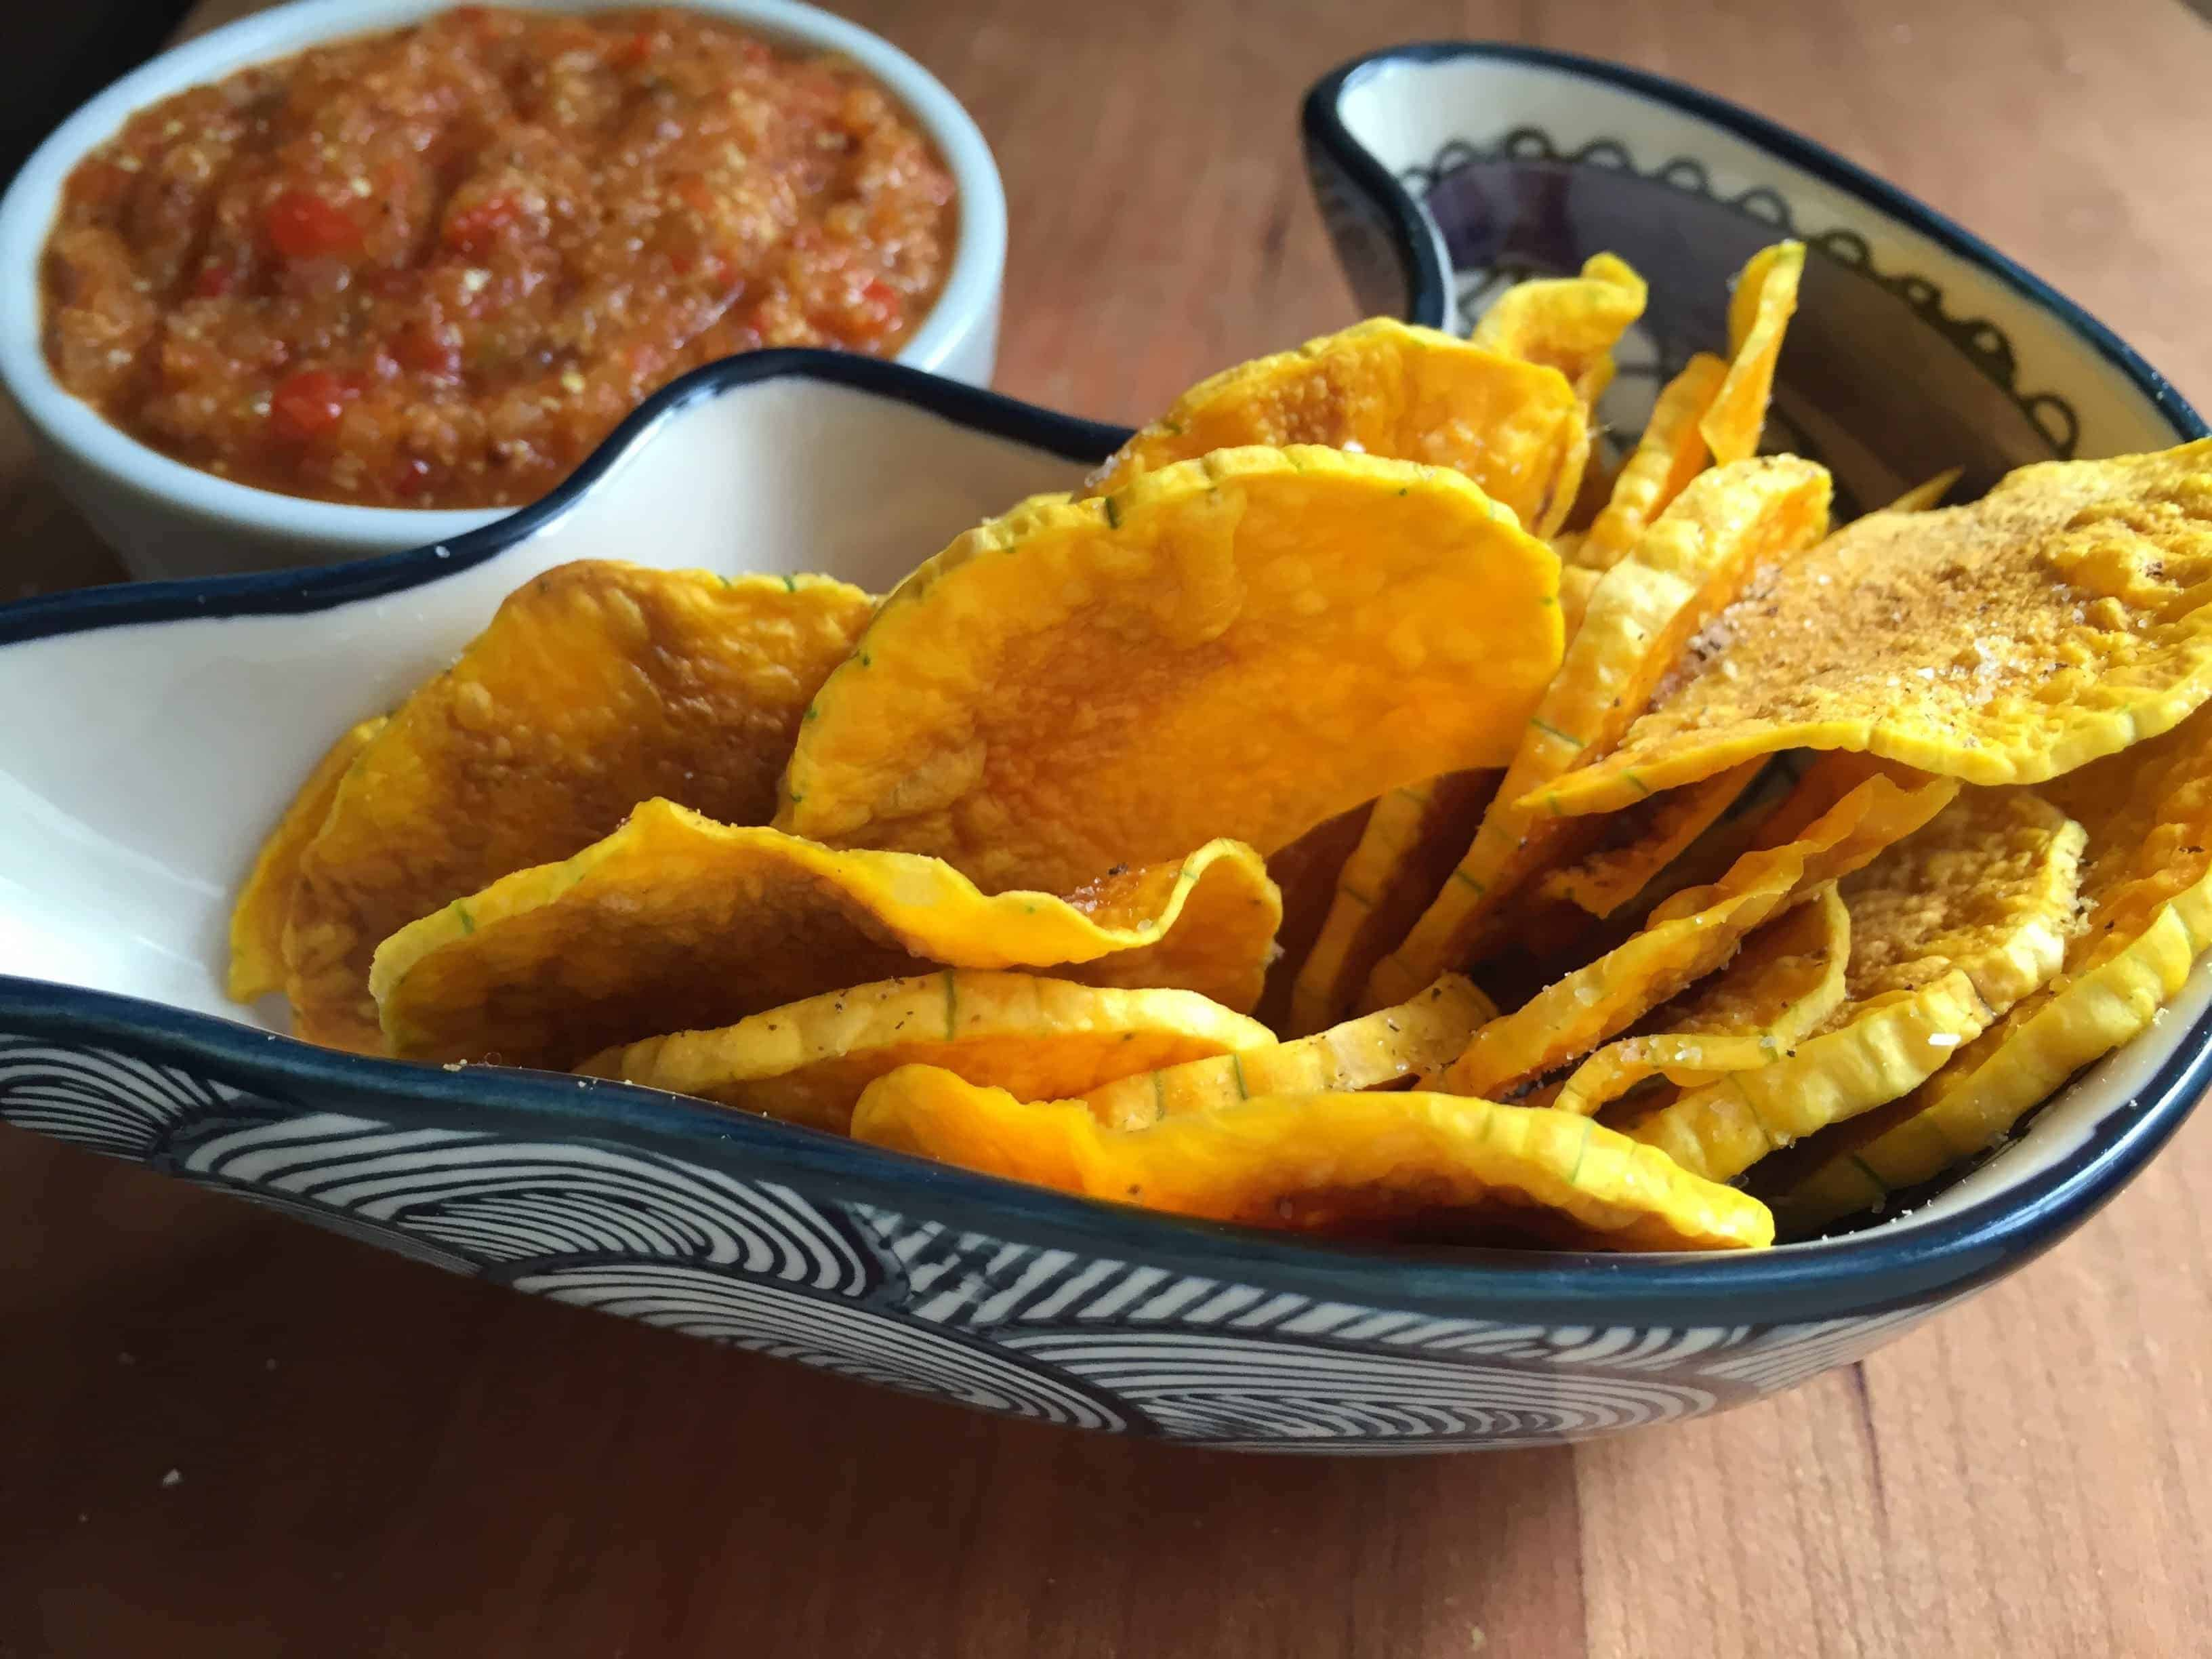 healthy_butternut_squash_chips_final_result_made_in_the_microwave_crunchy_sliced